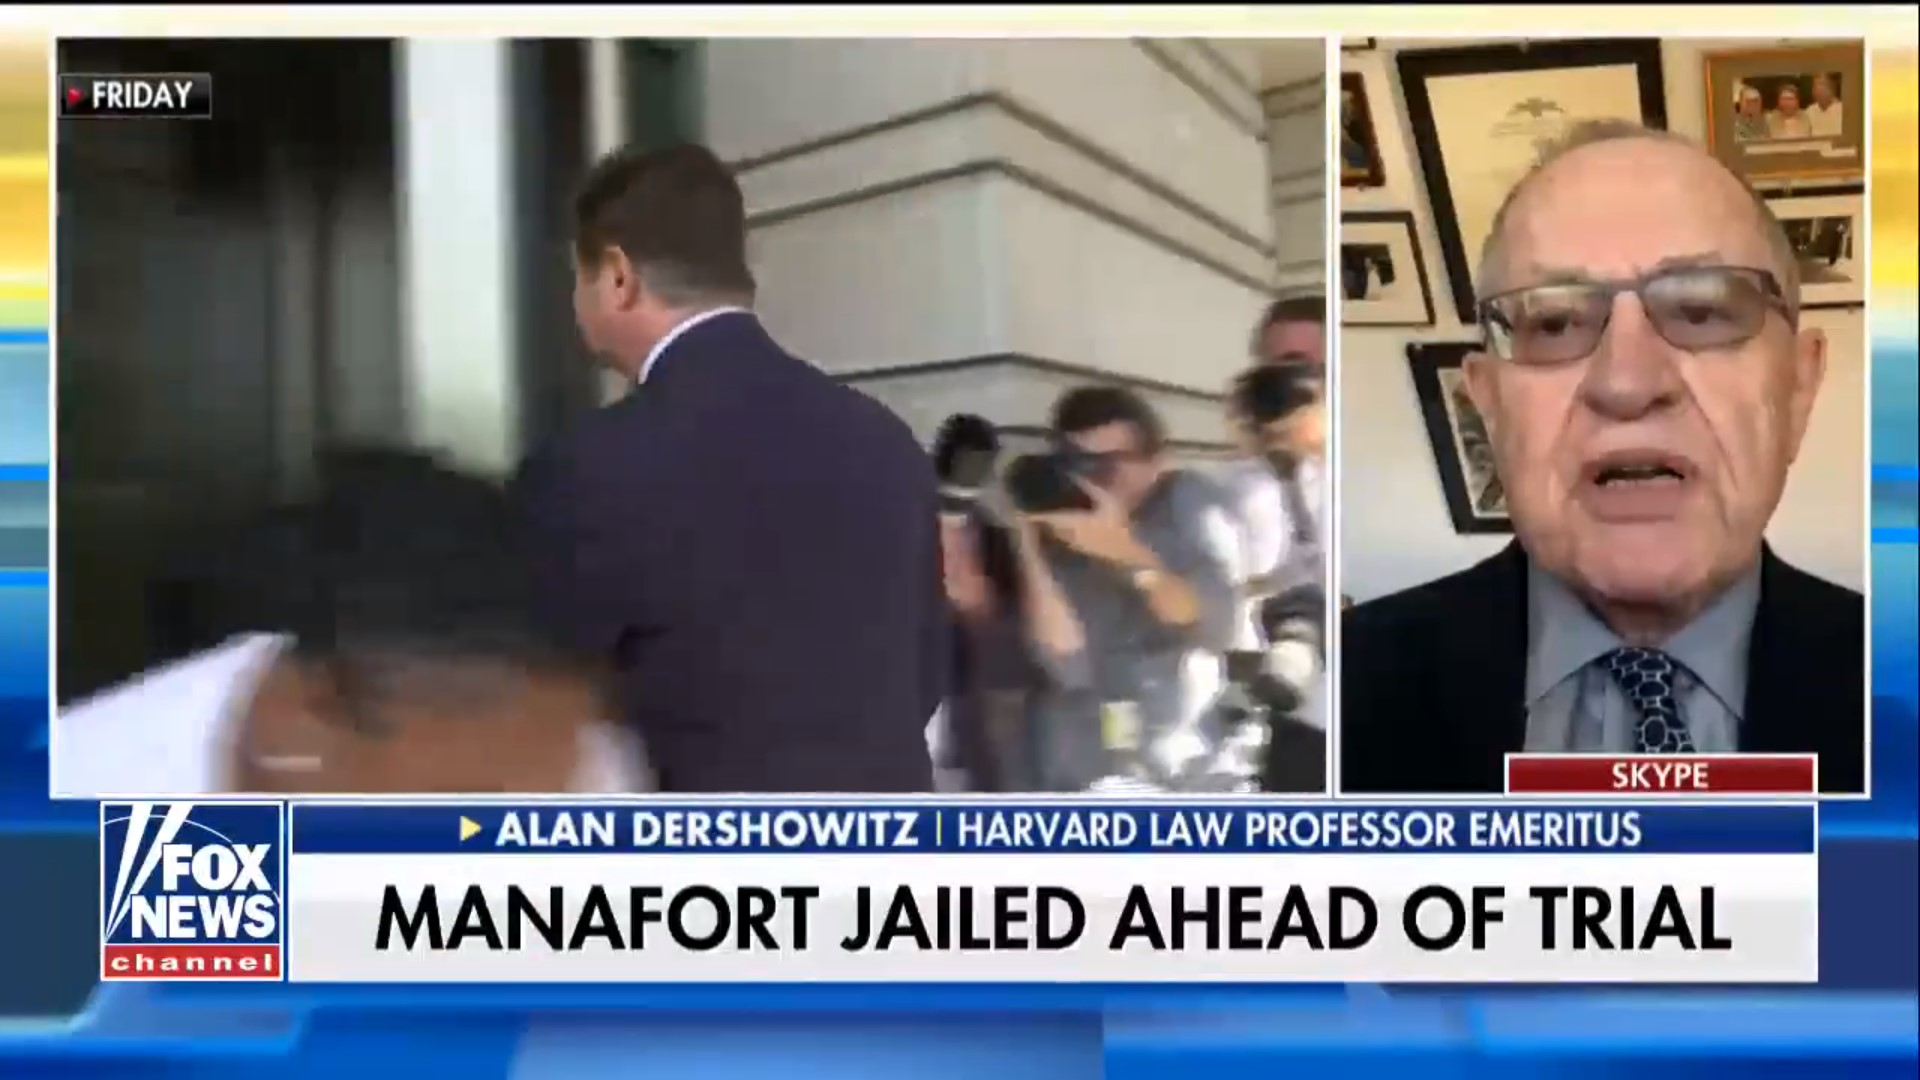 Alan Dershowitz Takes Heat Over Complaints That Paul Manafort Was Wrongly Jailed